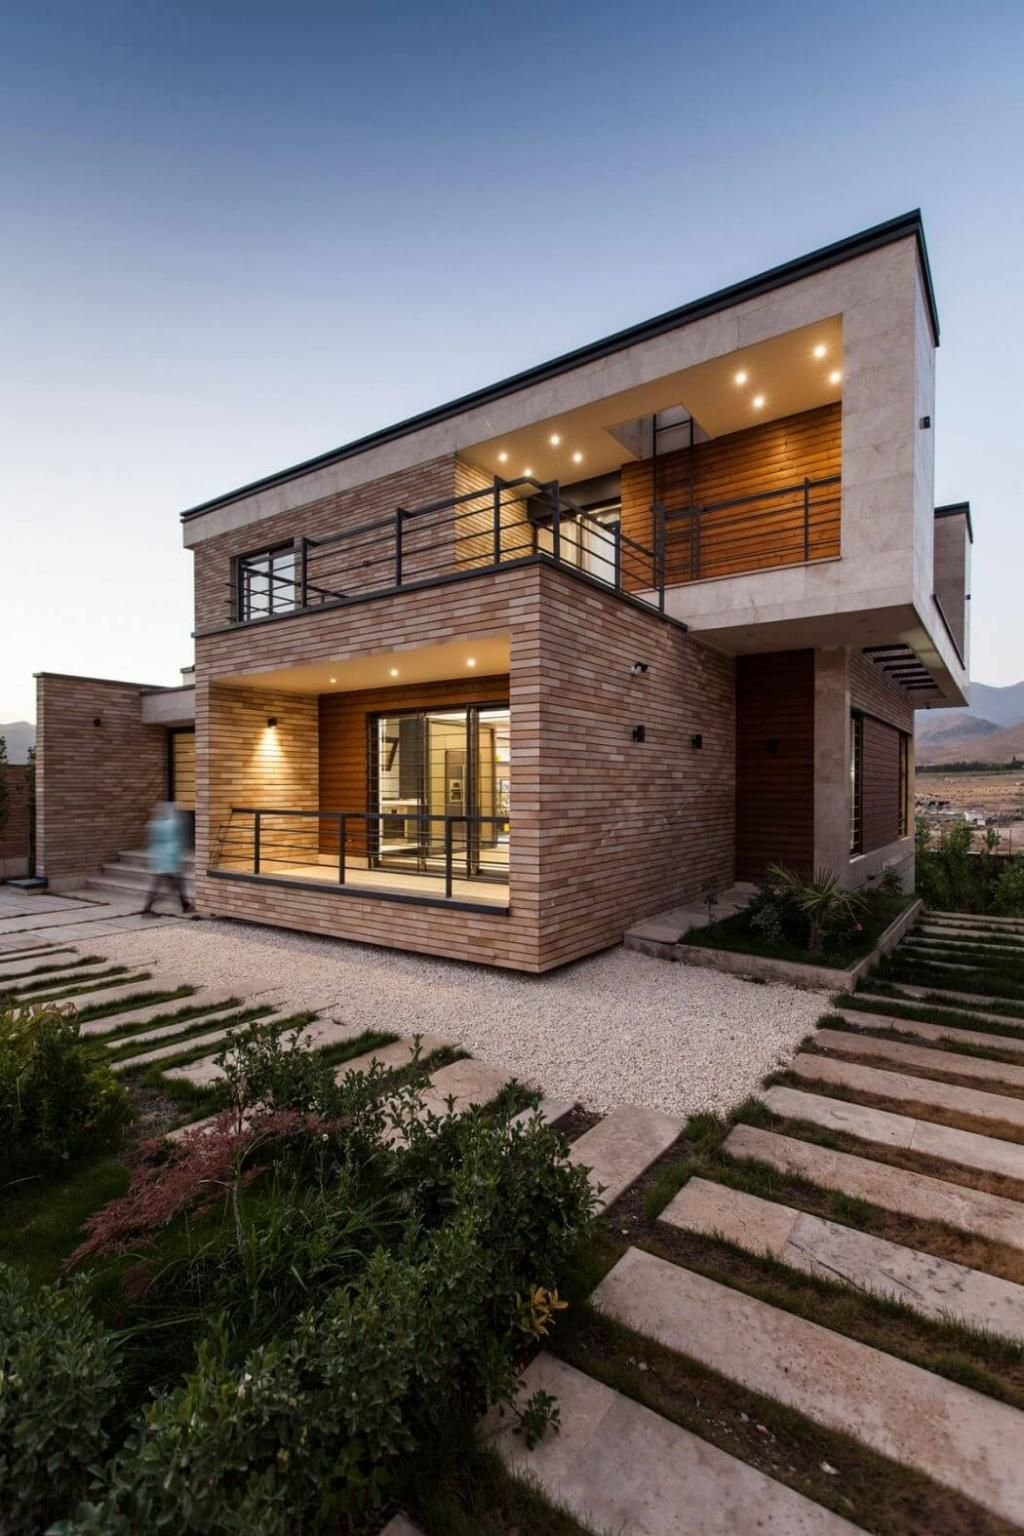 Modern Cube House Three Storey House In Iran By White Cube Atelier